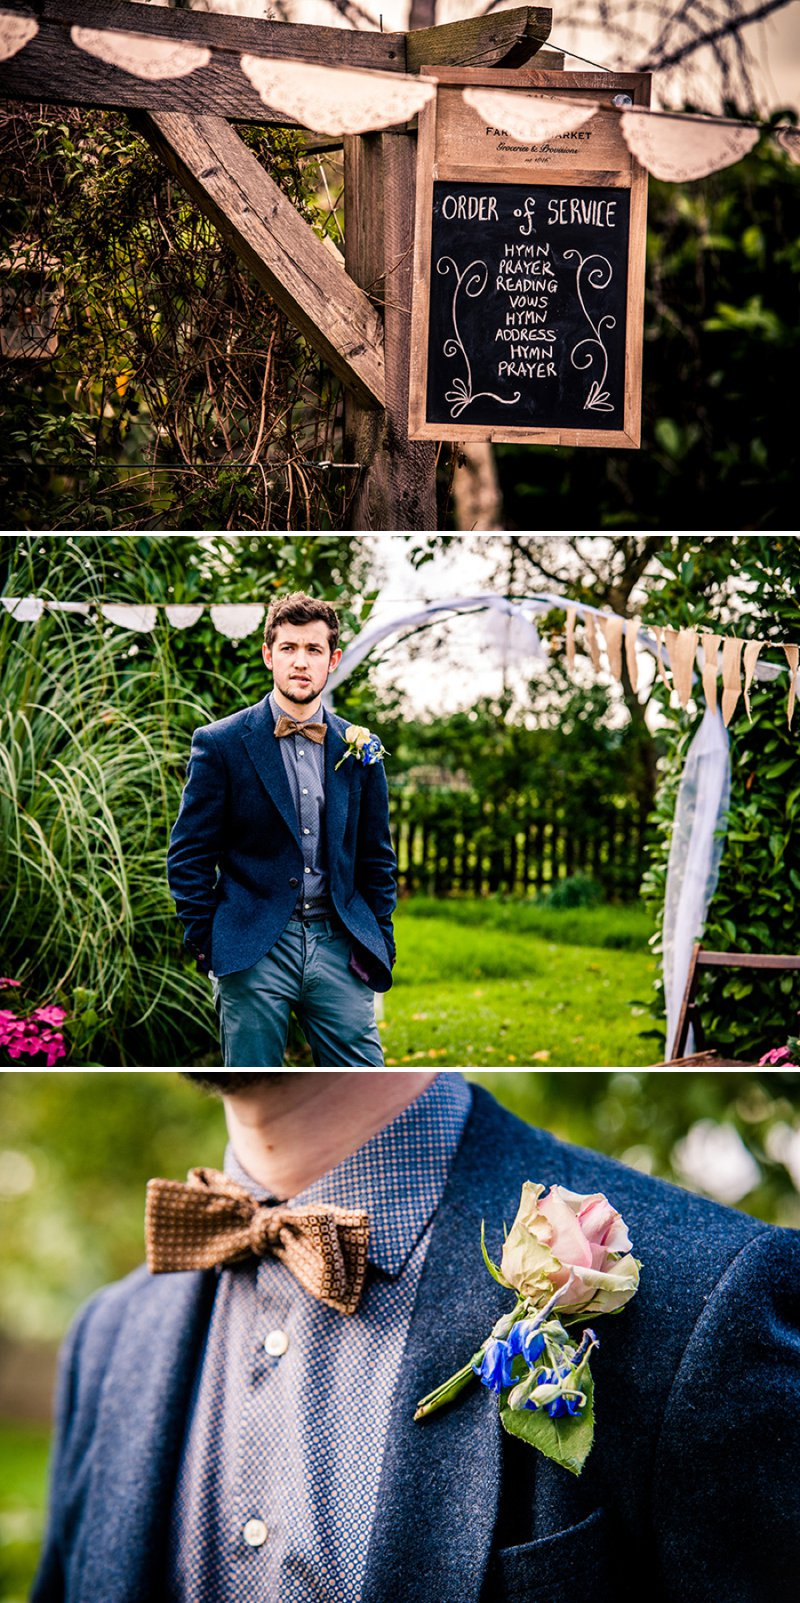 Rustic Backyard Wedding With Bride In Elegant Rapsimo Dress And Groom In Wool Suit And Bowtie With Lots Of Home Made Details And A High Tea Wedding Breakfast 4